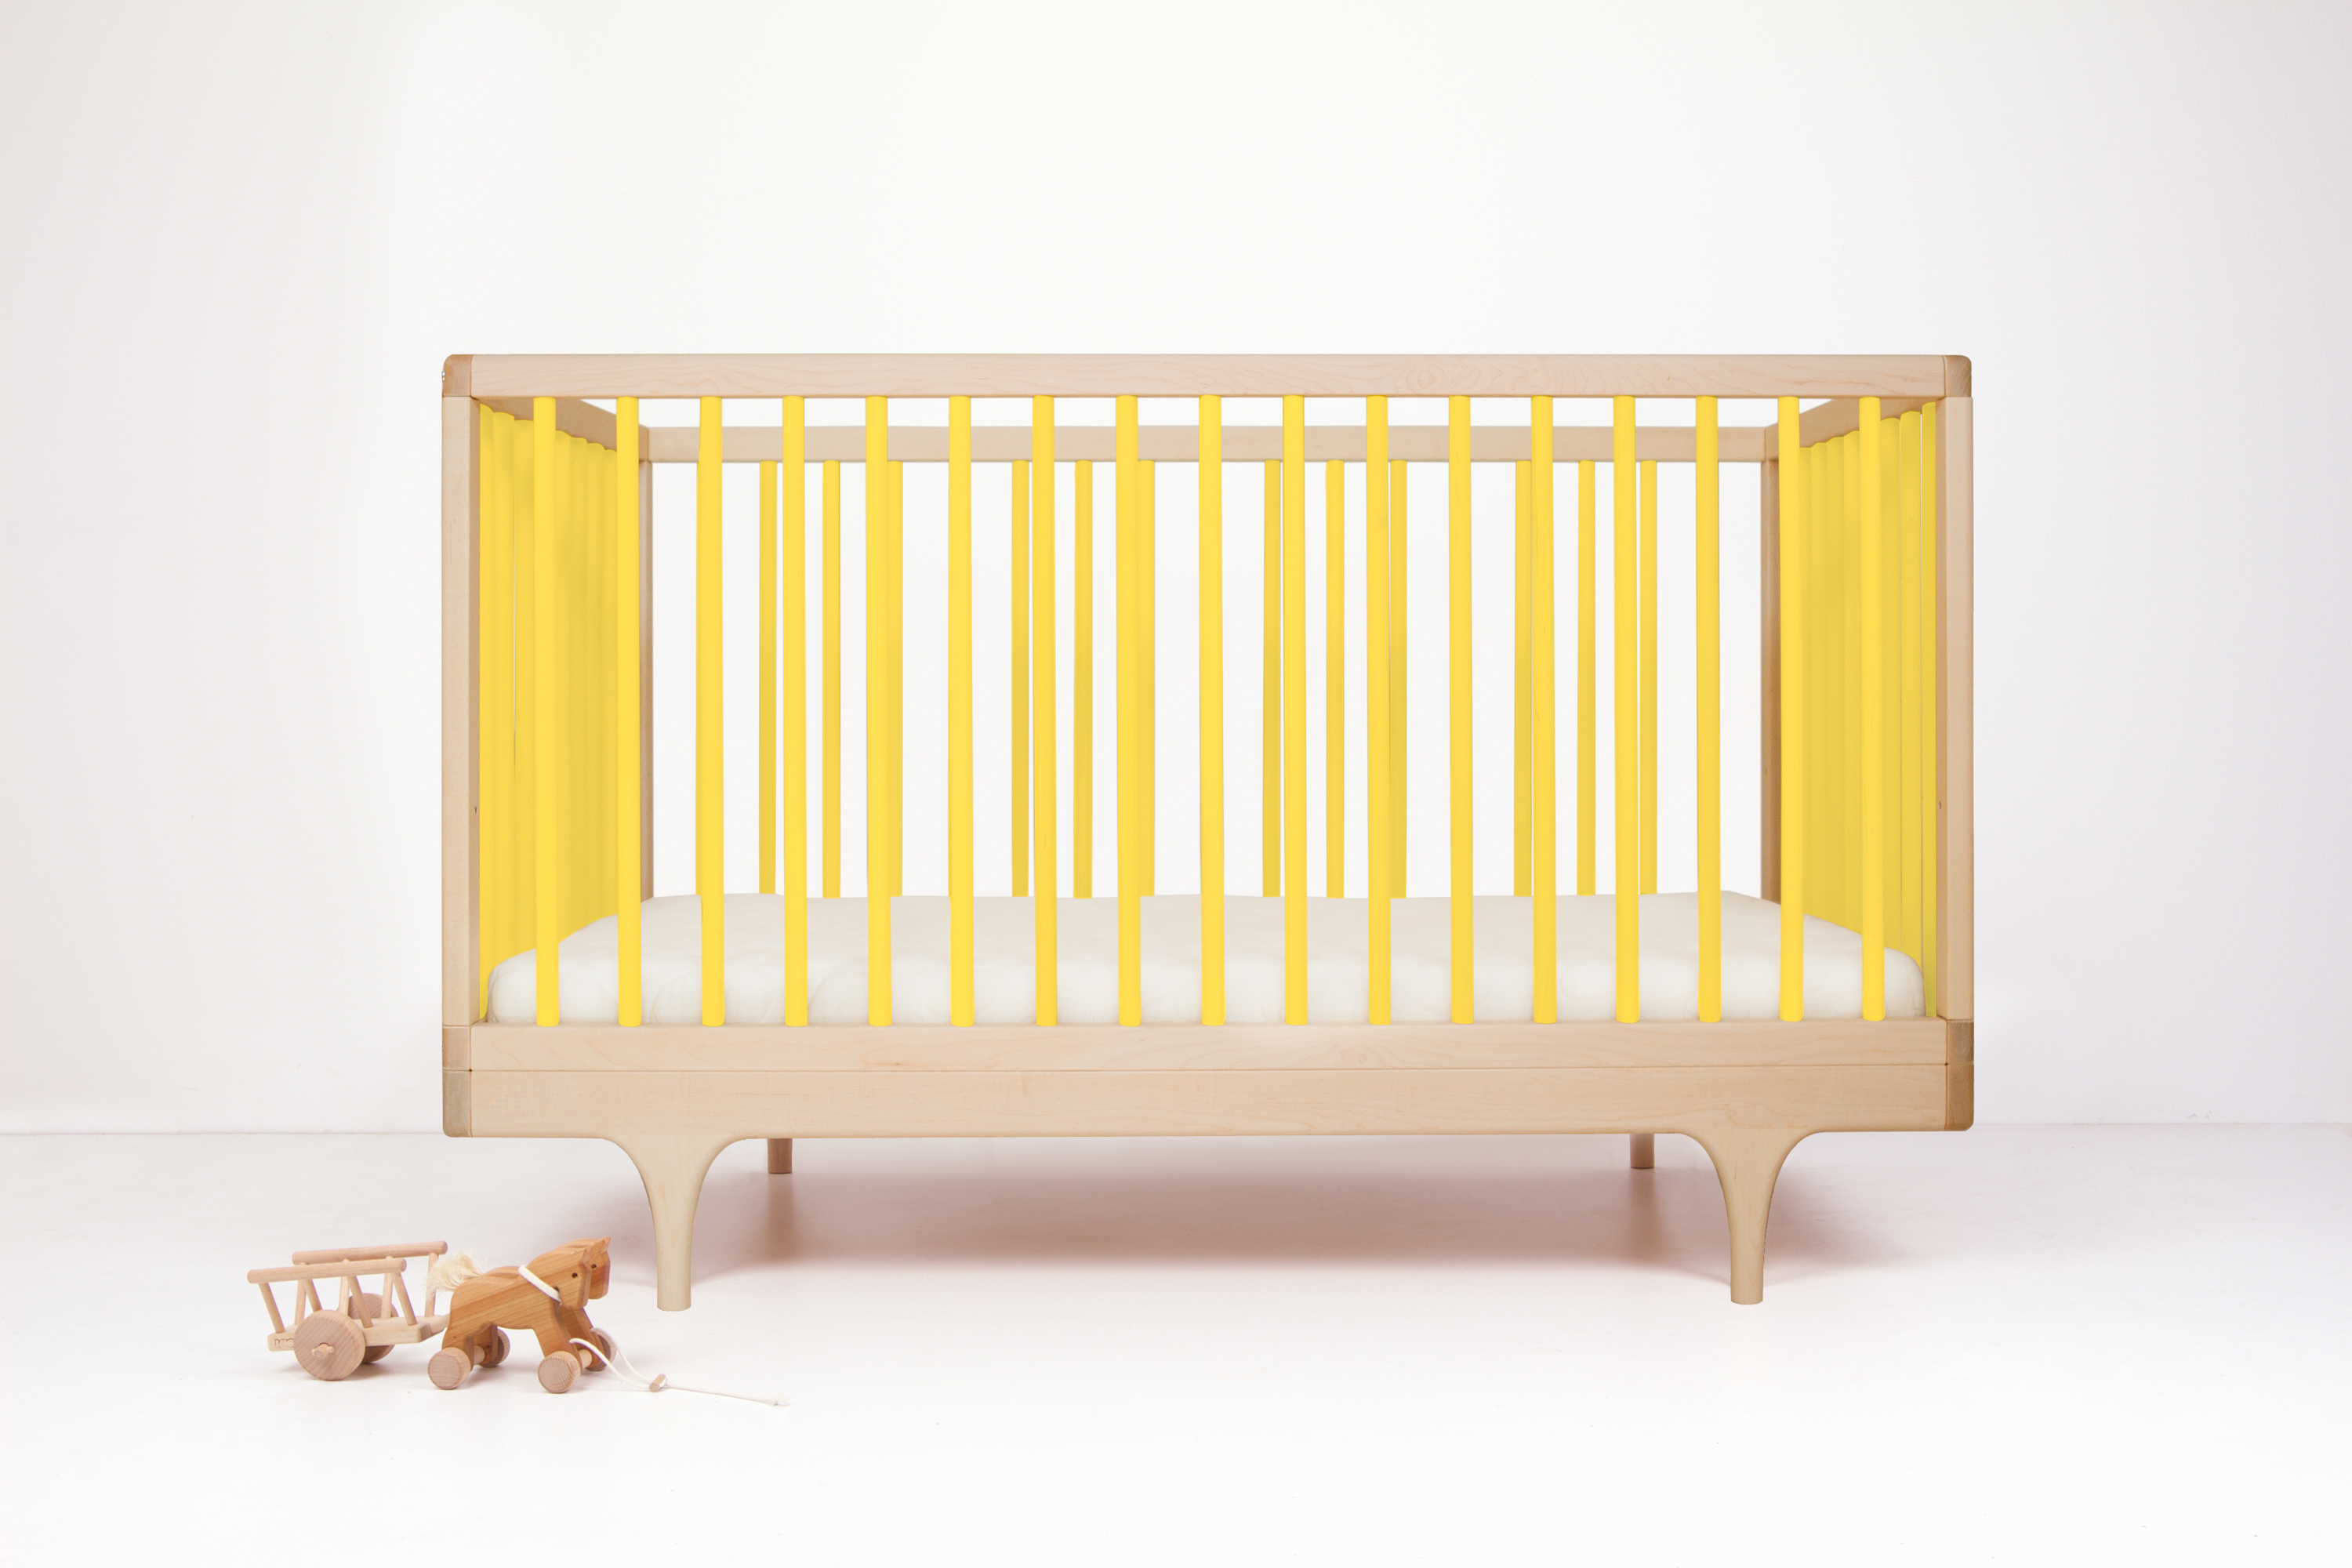 image in mini baby crib best cribs bundle full noninoni made copy noni buy kids usa size and